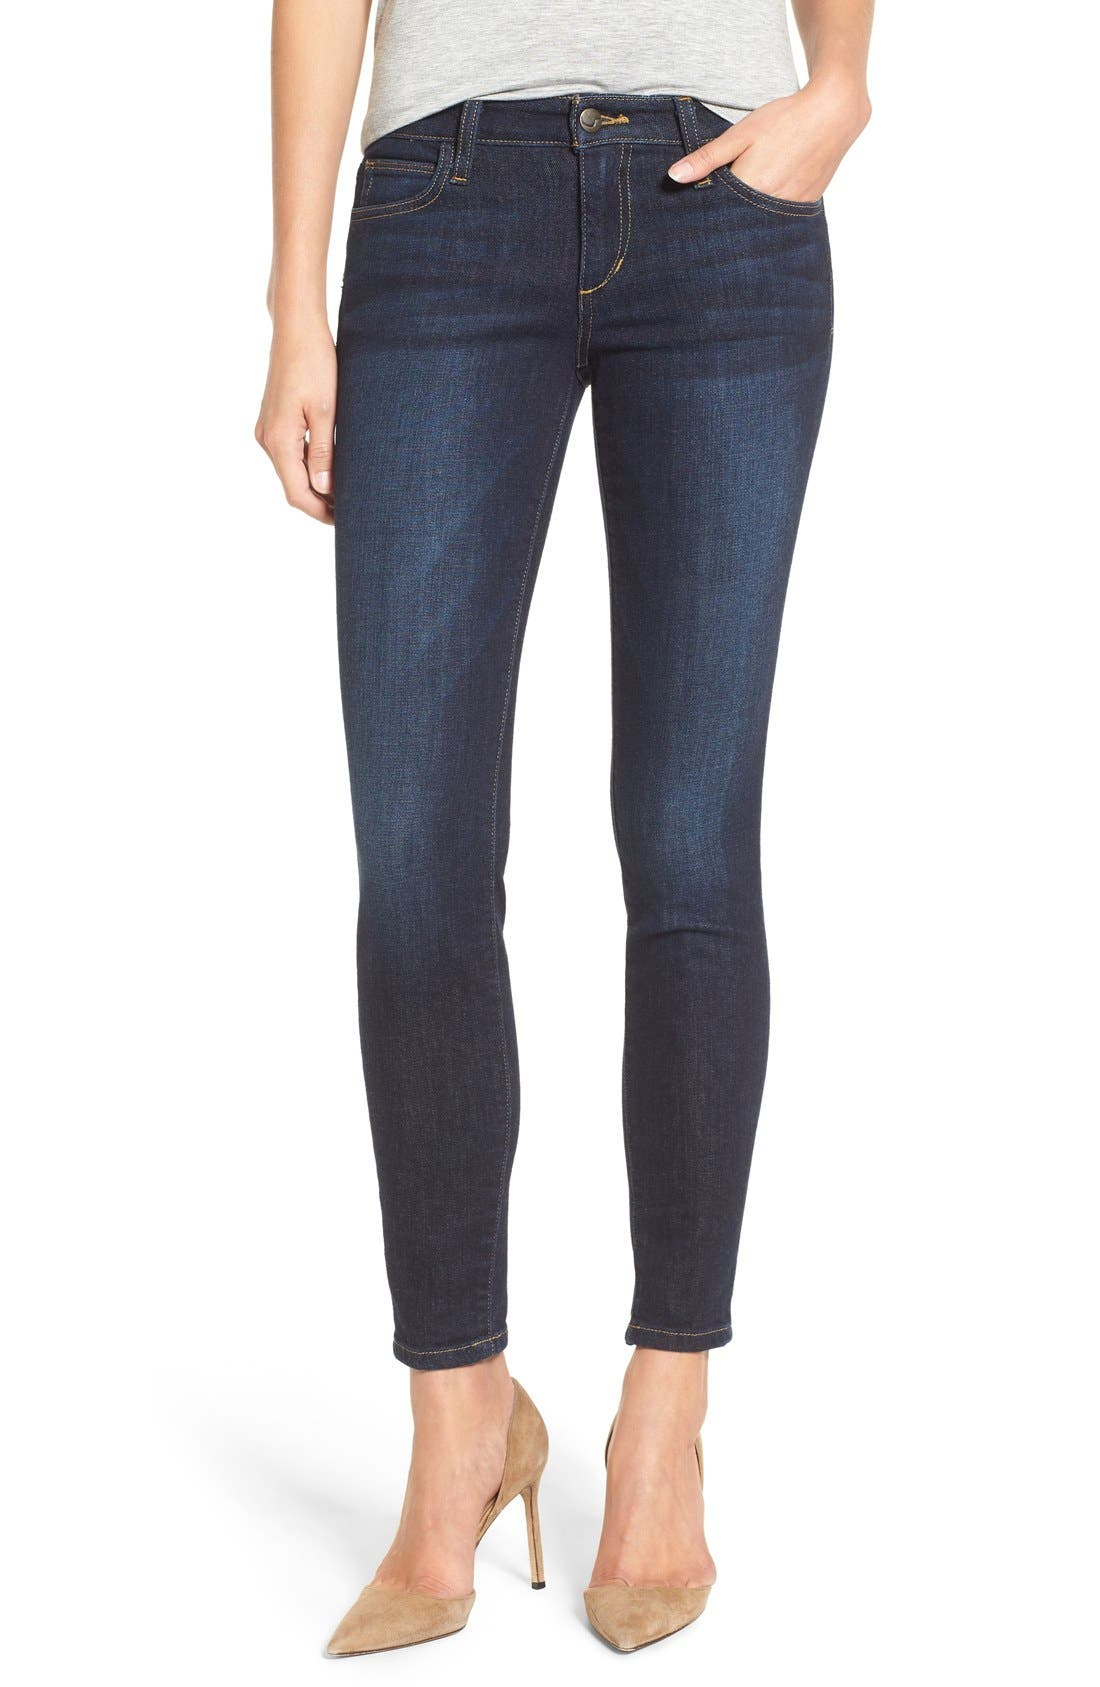 JOE'S,                             Ankle Skinny Jeans,                             Main thumbnail 1, color,                             410